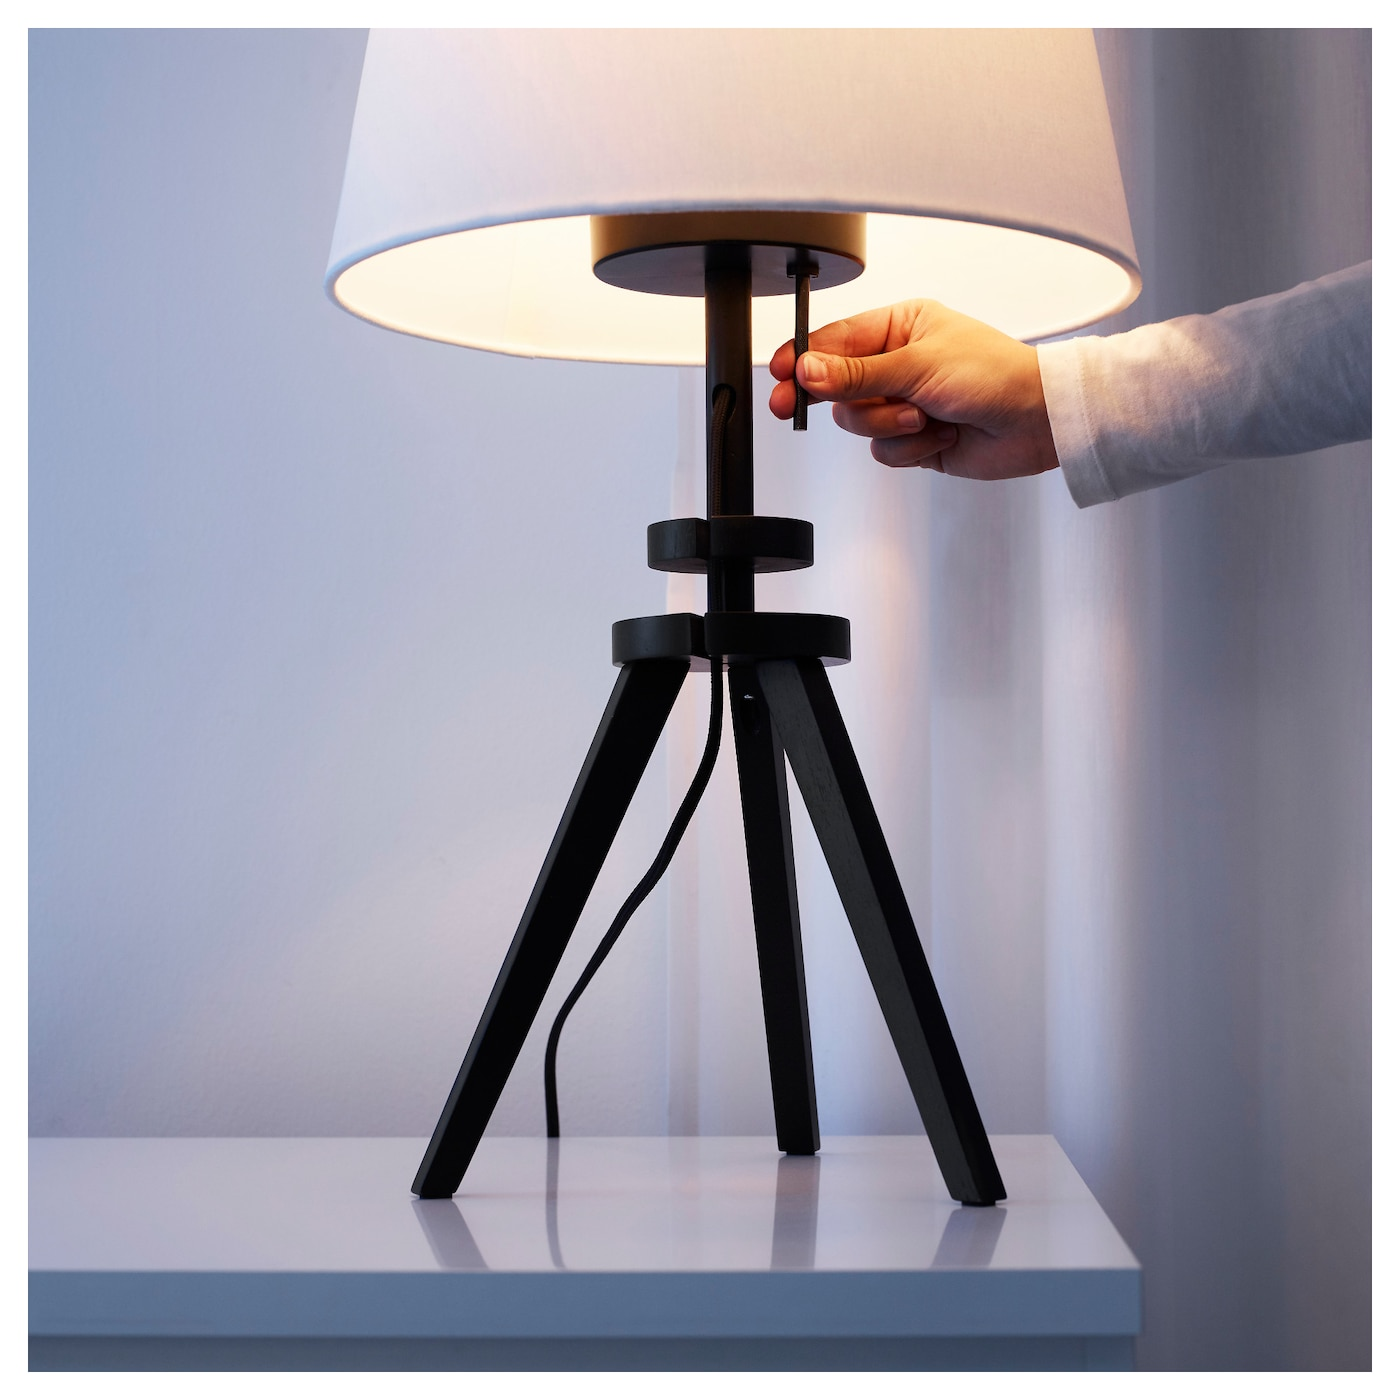 IKEA LAUTERS pied de lampe de table